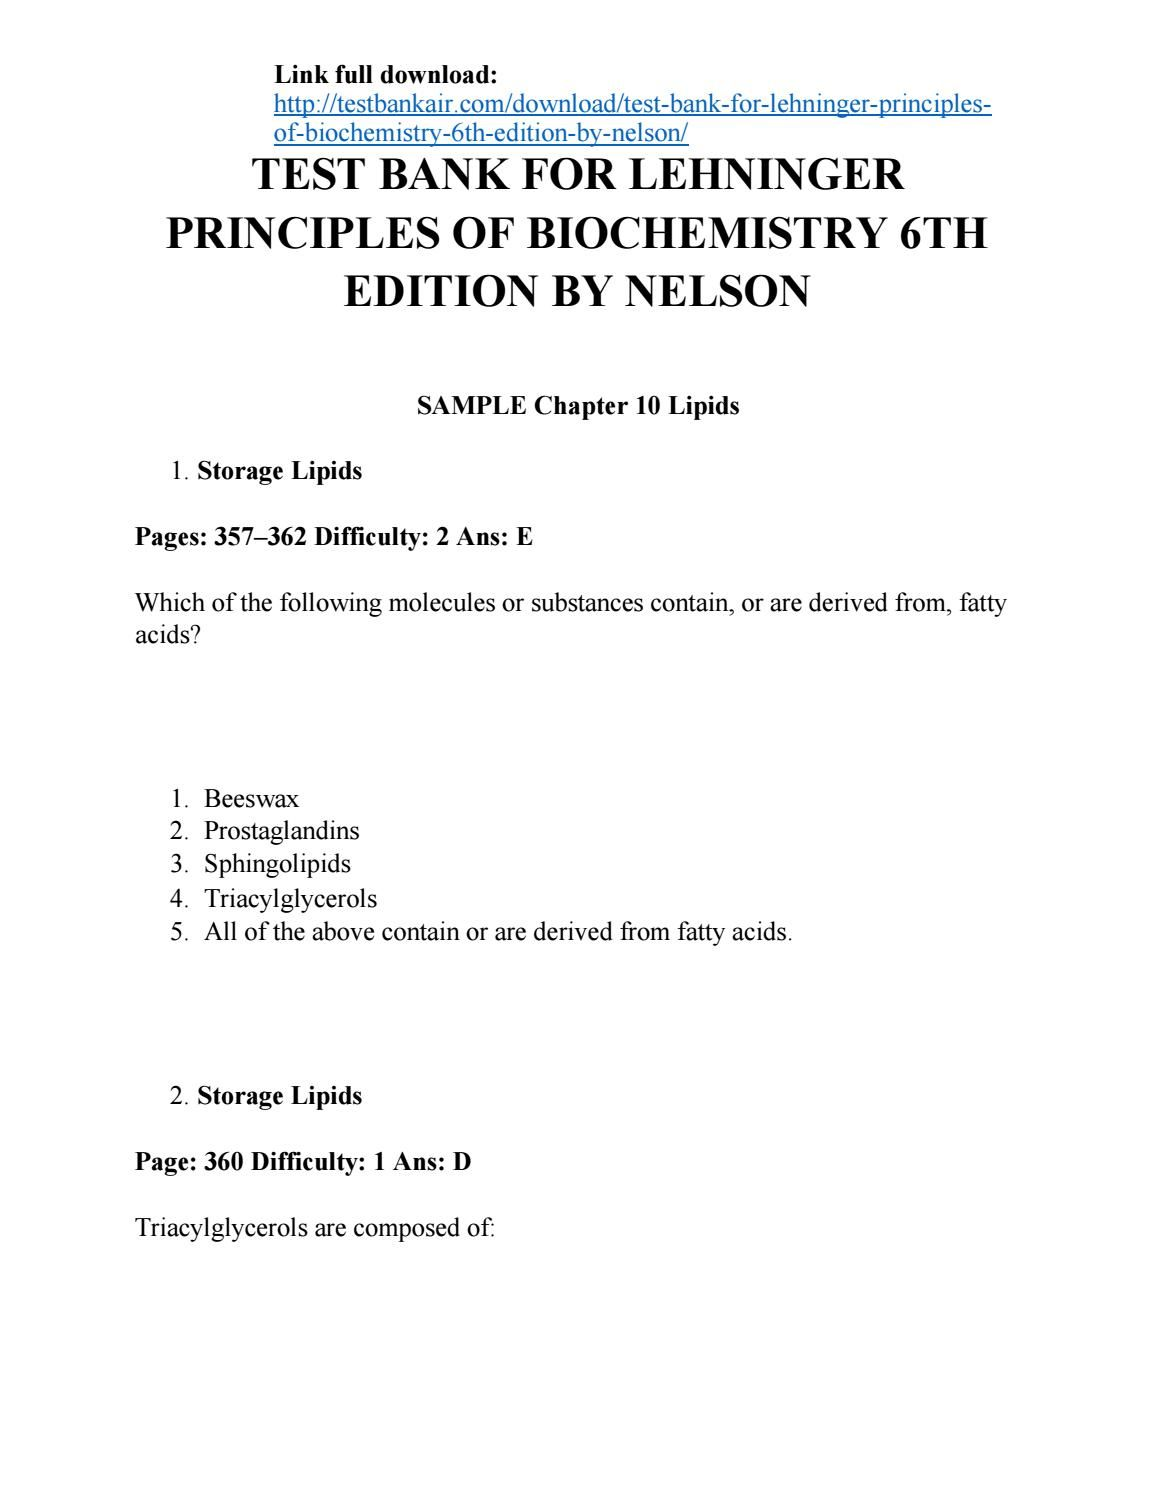 Download test bank for lehninger principles of biochemistry 6th edition by  nelson